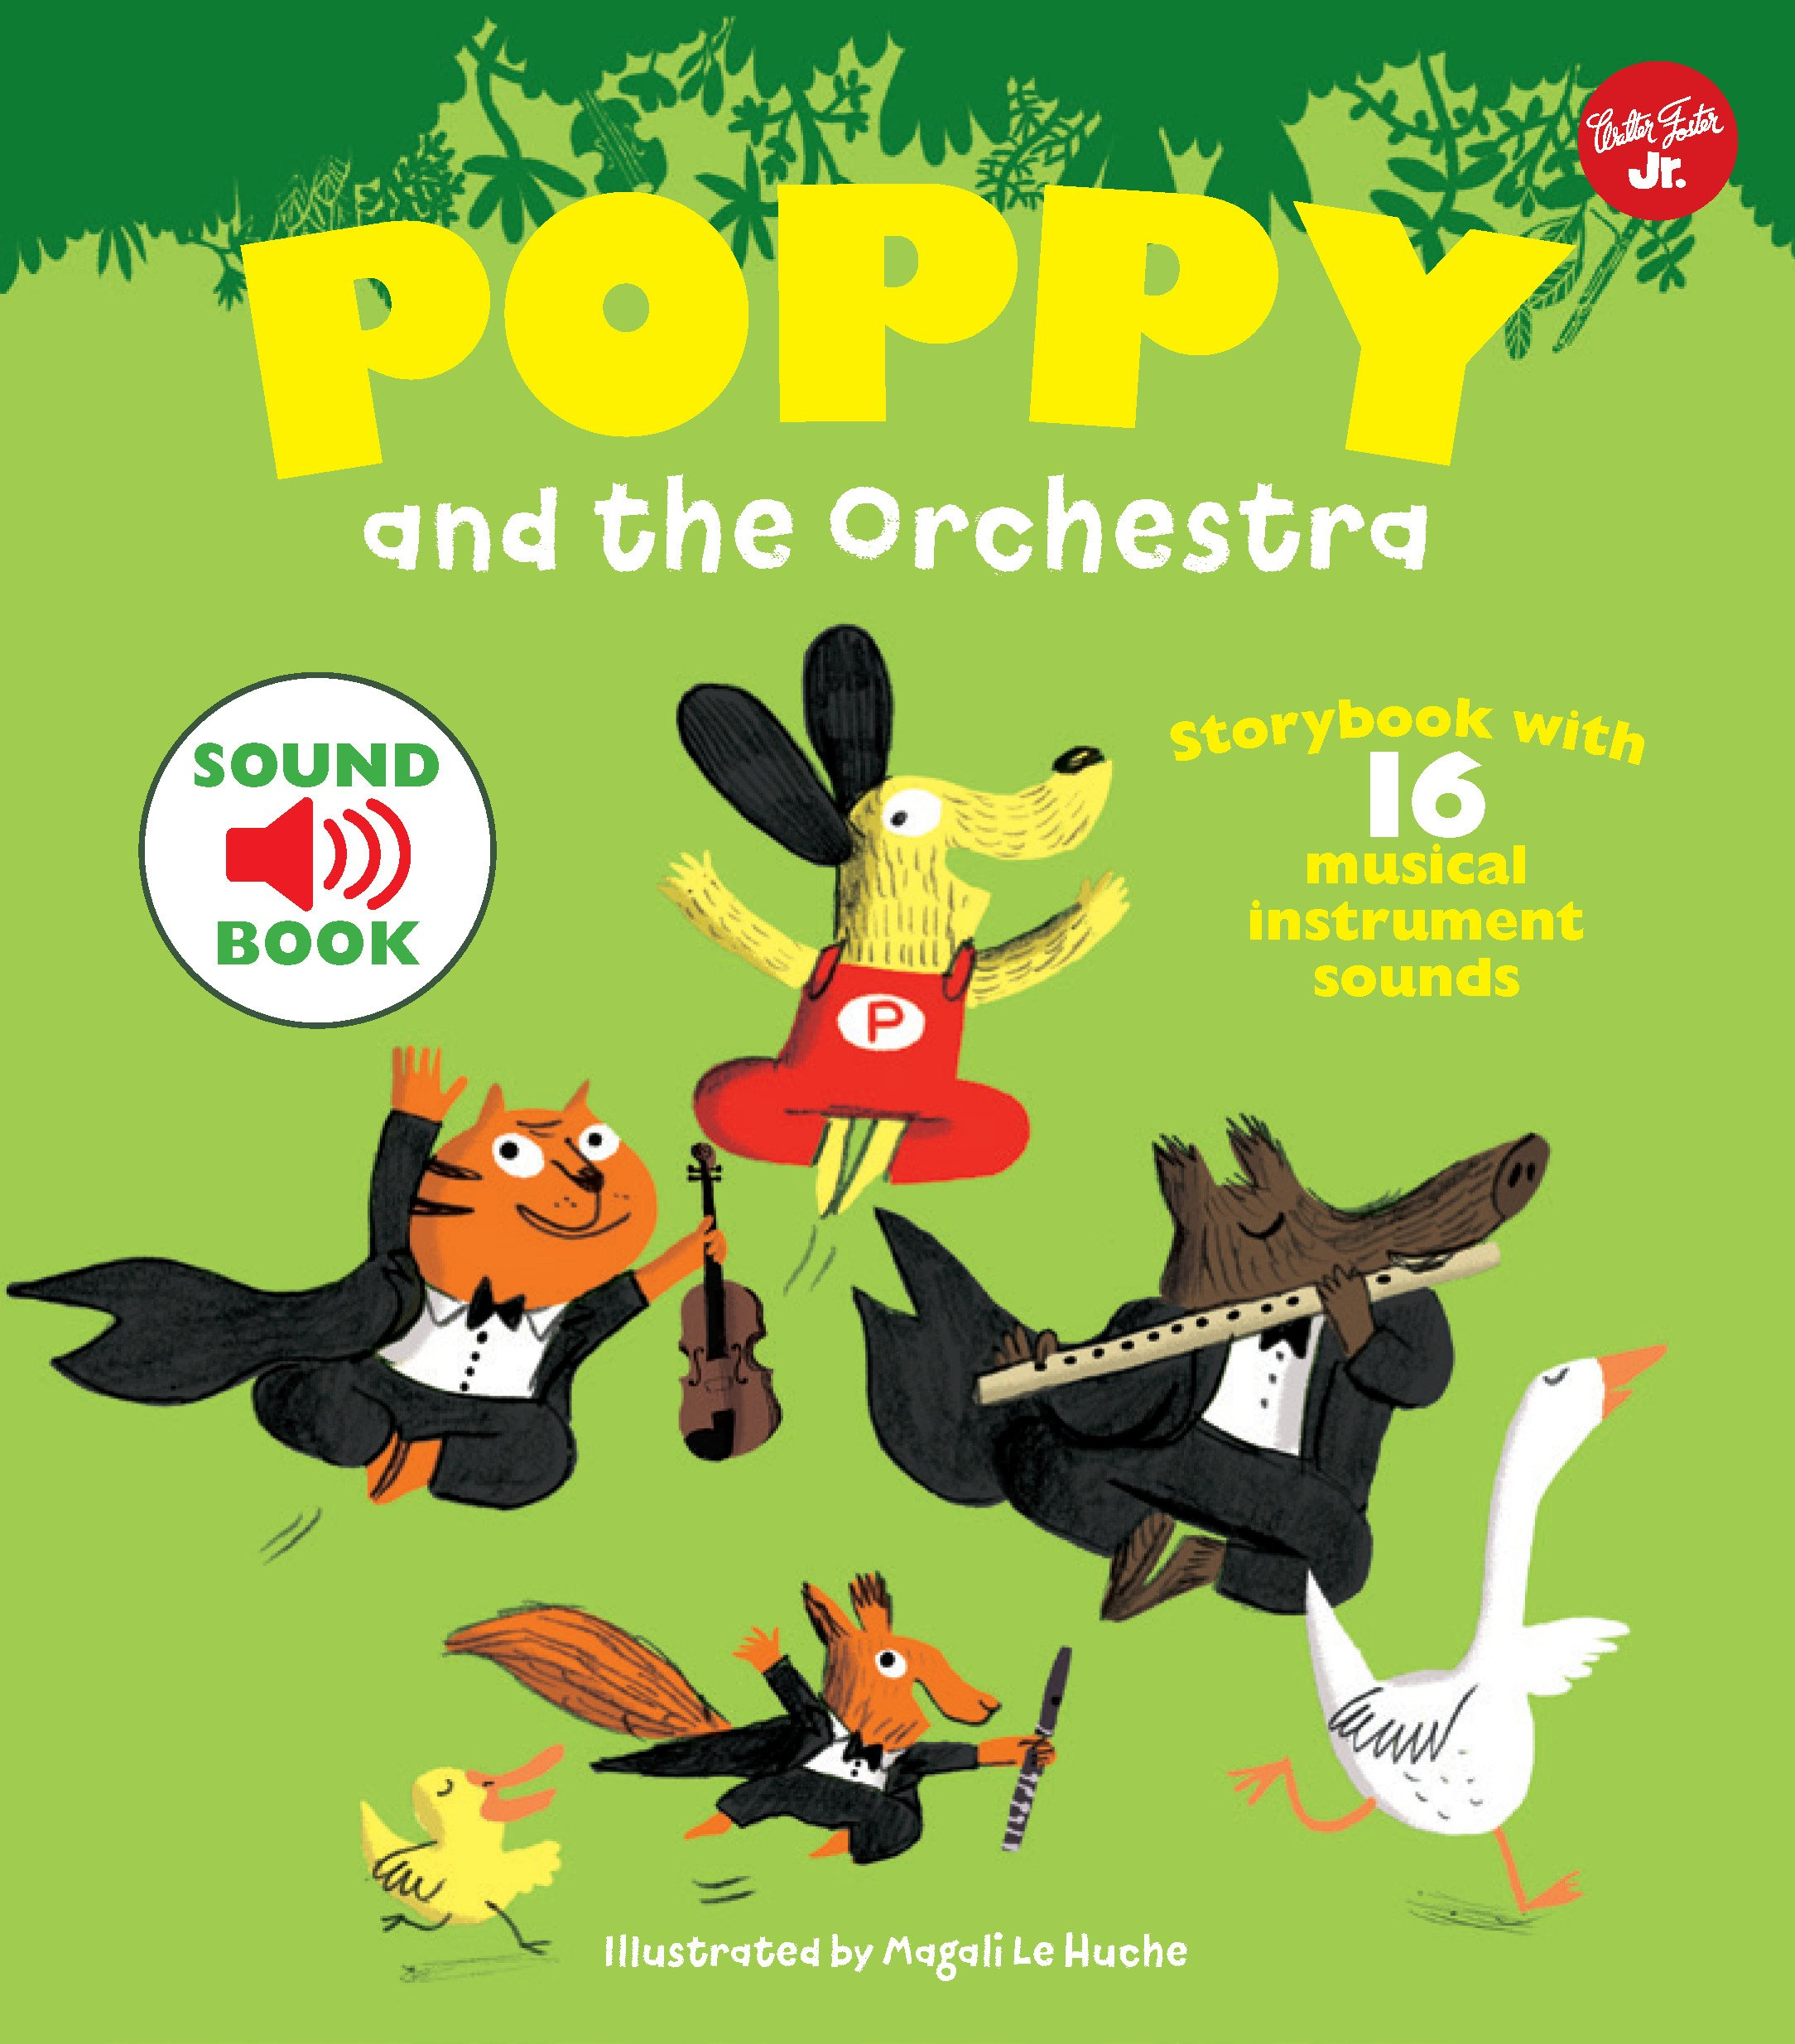 Poppy & the Brass Band | Poppy & the Orchestra